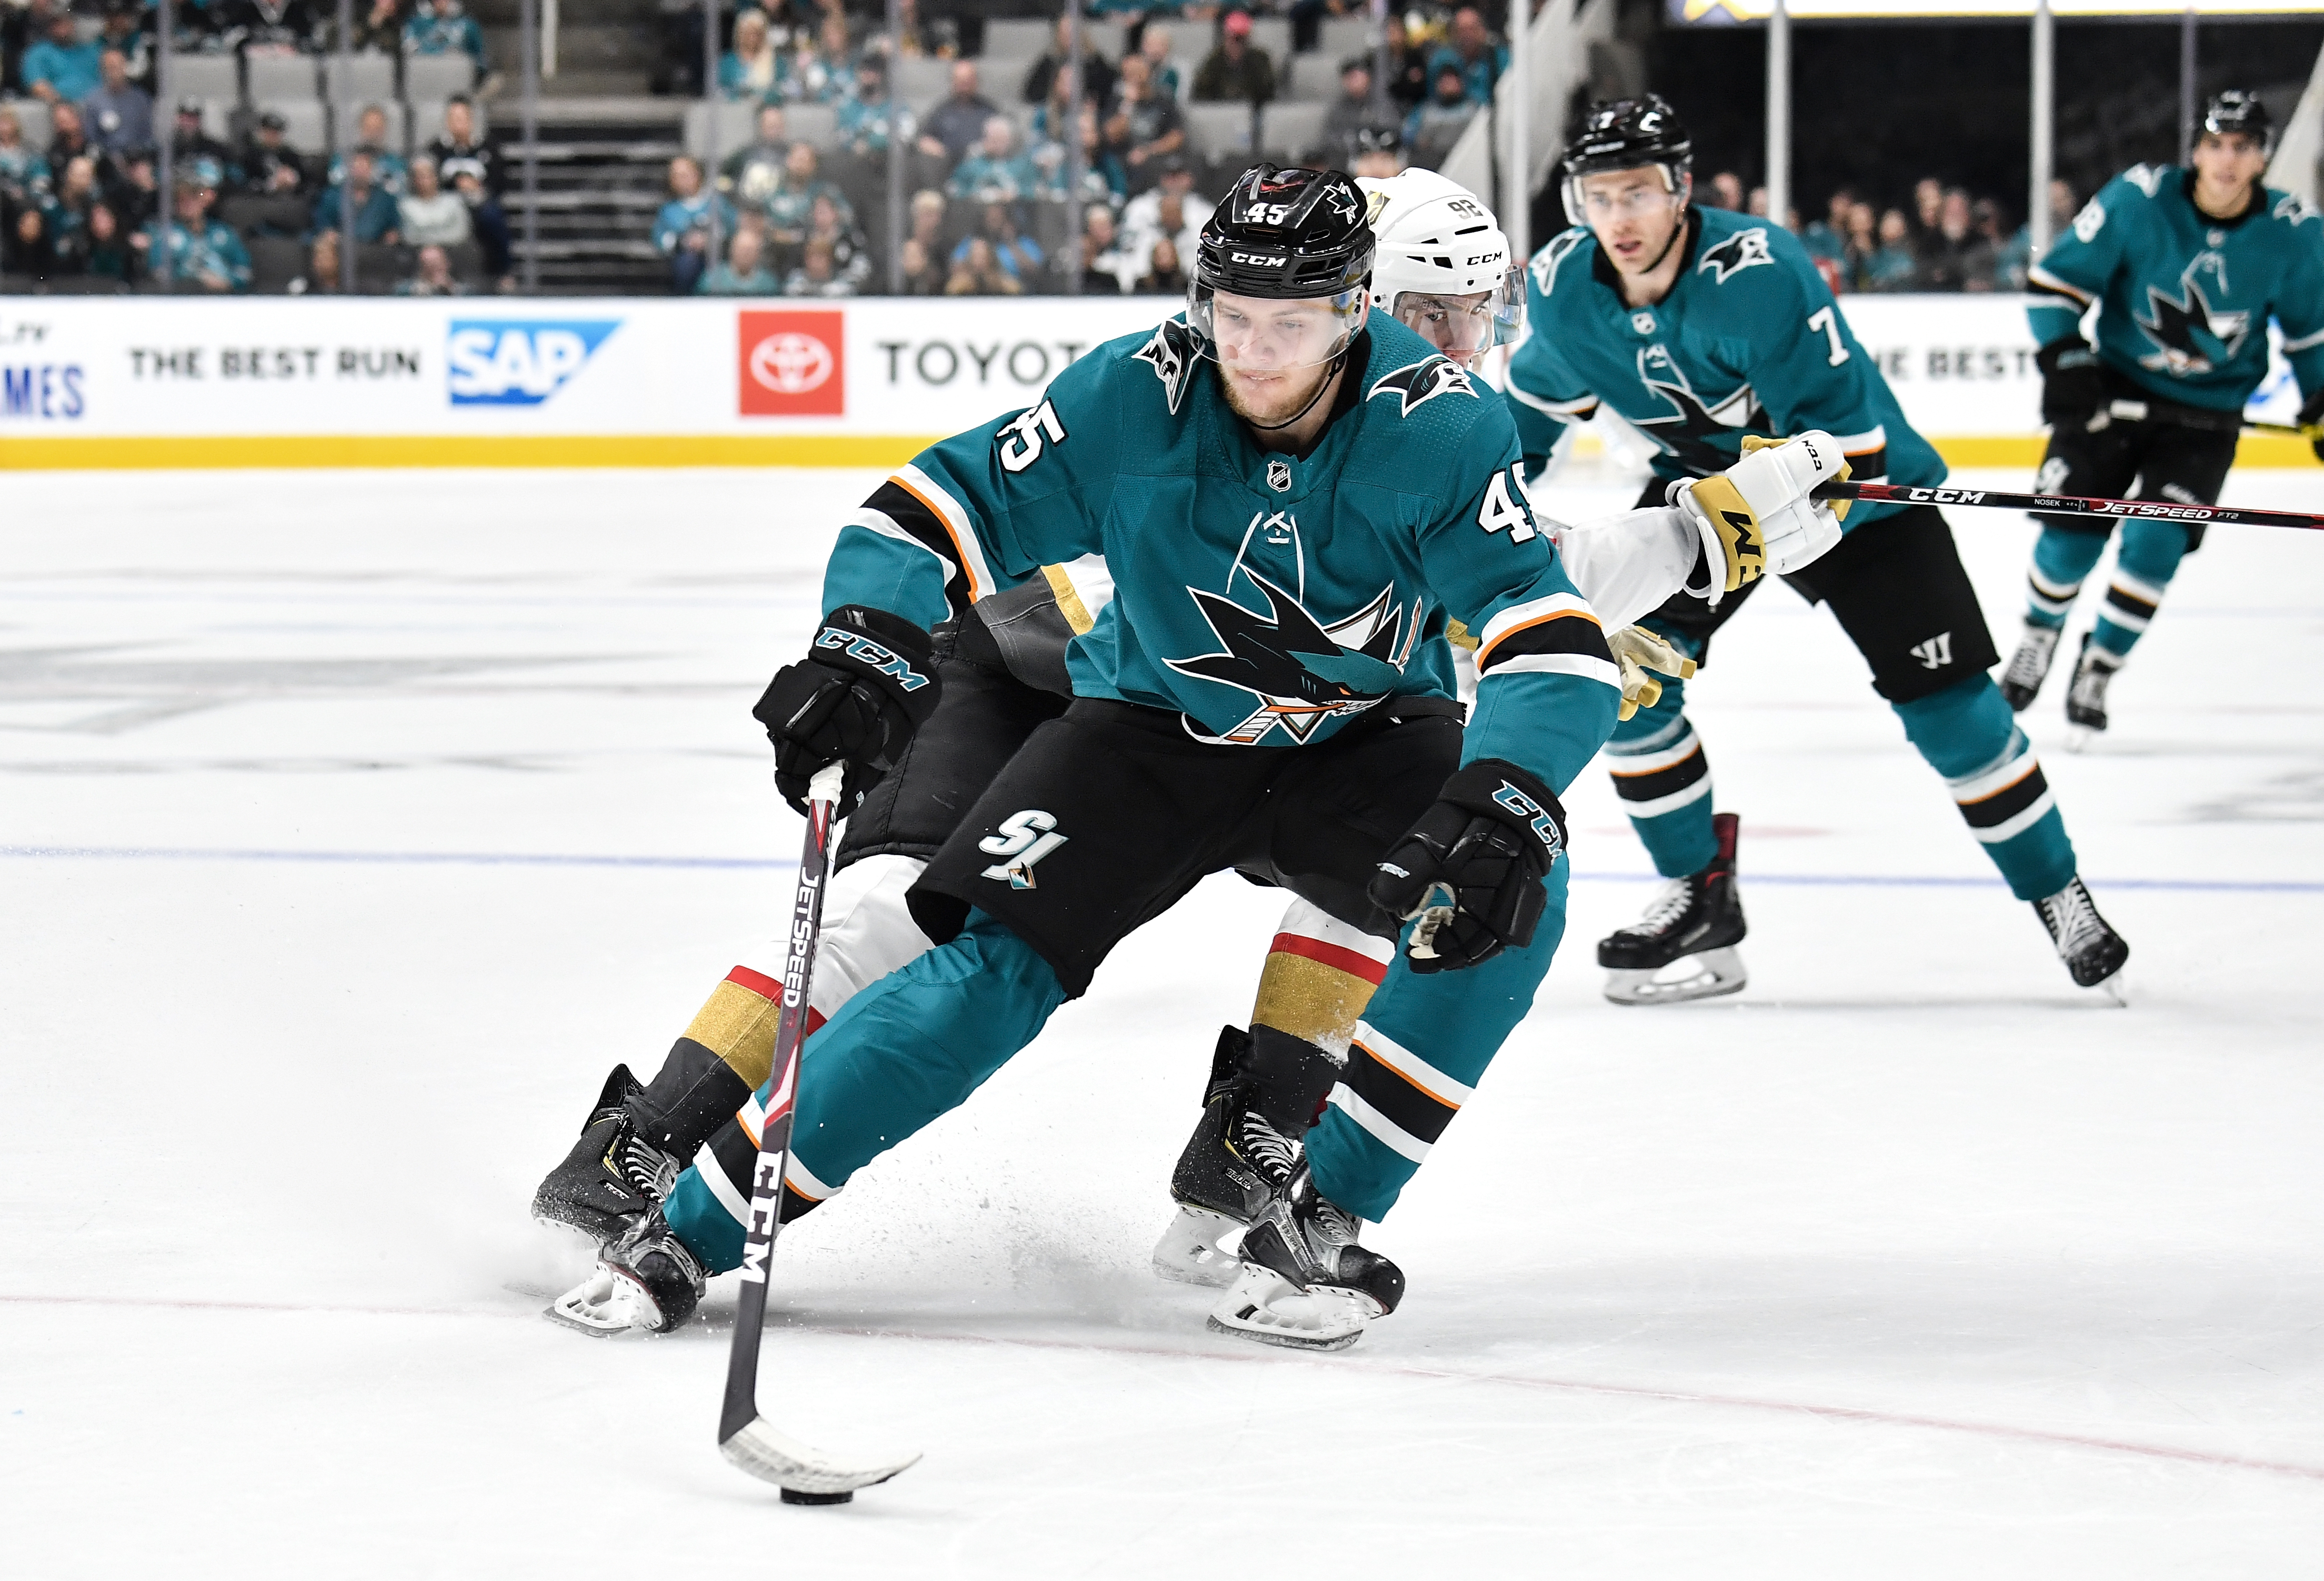 SAN JOSE, CA - OCTOBER 04: Lean Bergmann #45 of the San Jose Sharks skates ahead with the puck against the Vegas Golden Knights at SAP Center on October 4, 2019 in San Jose, California.